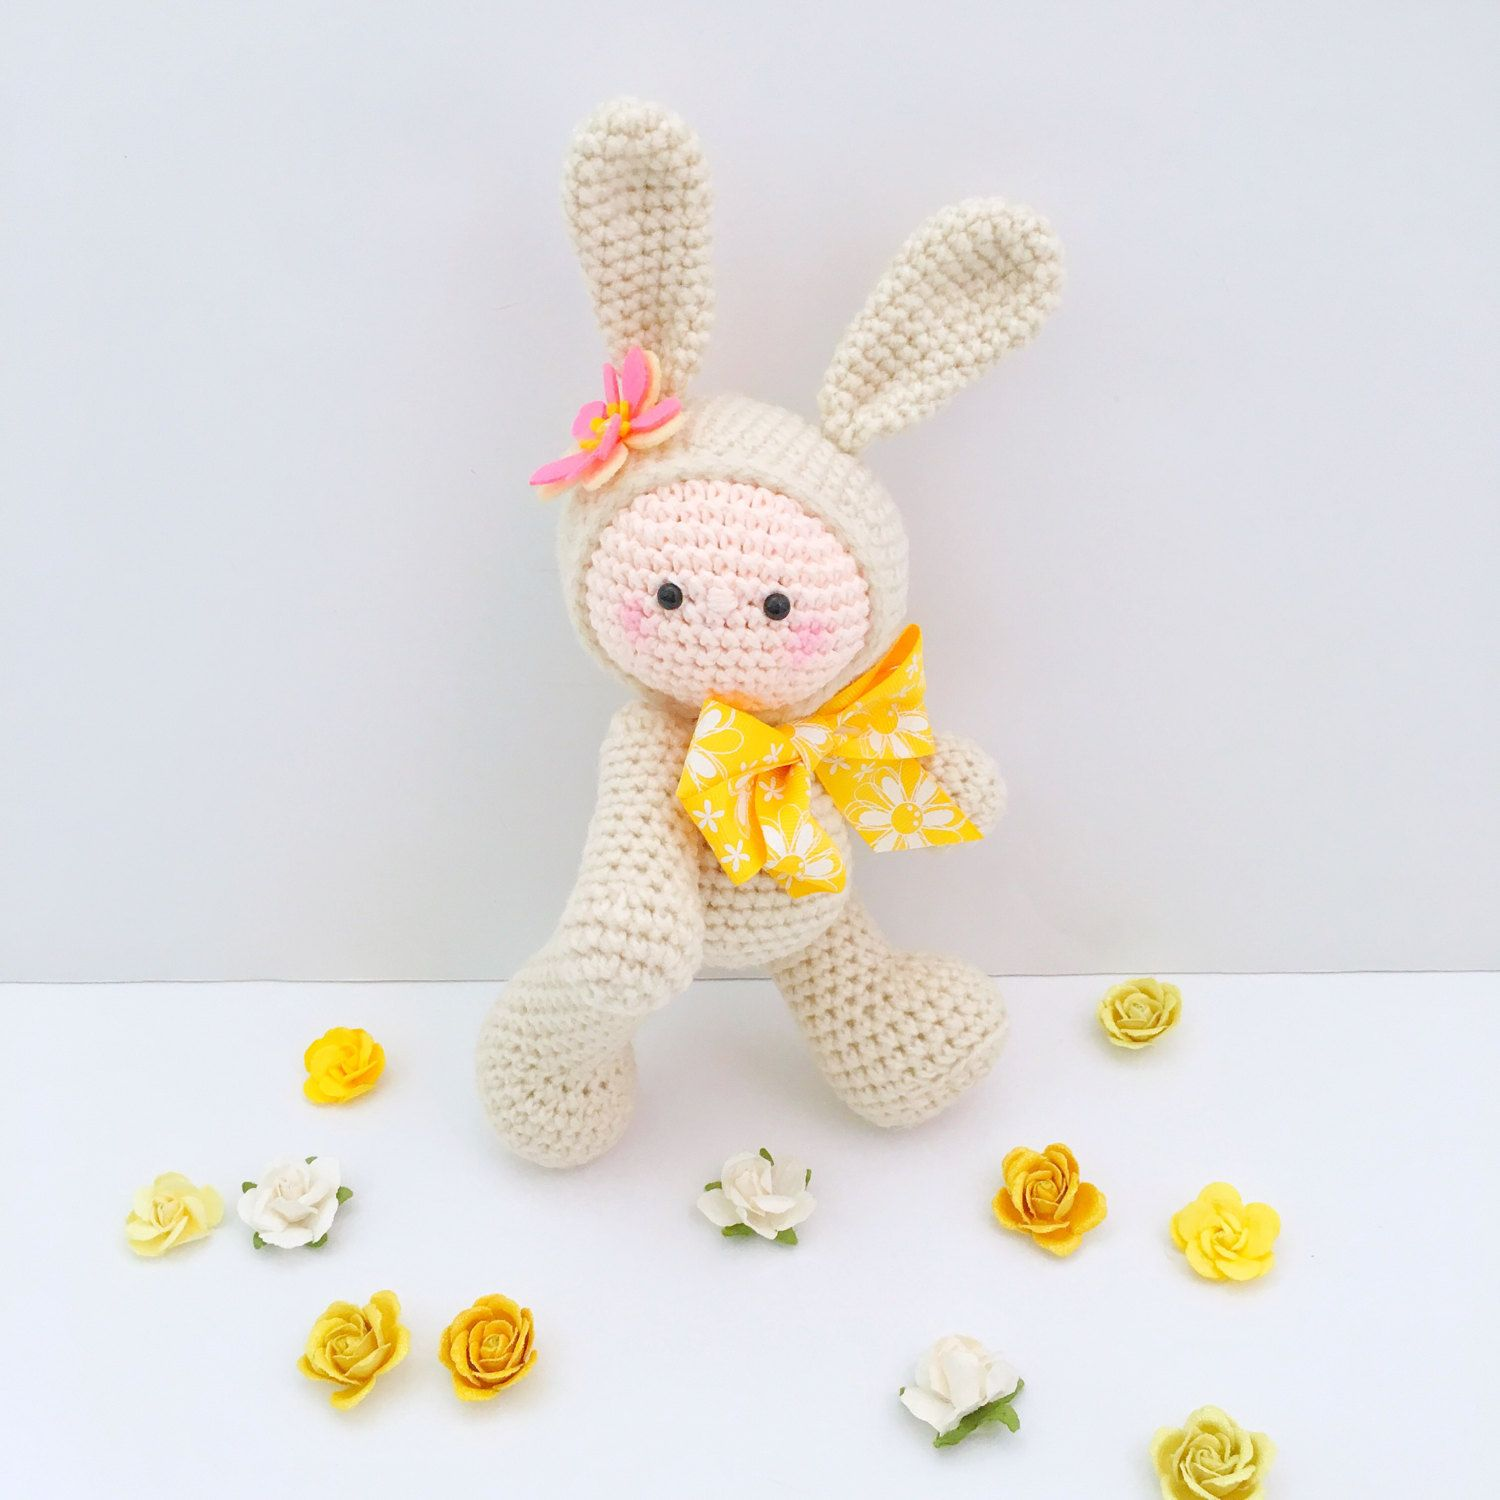 Toys images for kids  Amigurumi Baby Doll Crochet Bunny Plush Amigurumi Bunny Doll Crochet